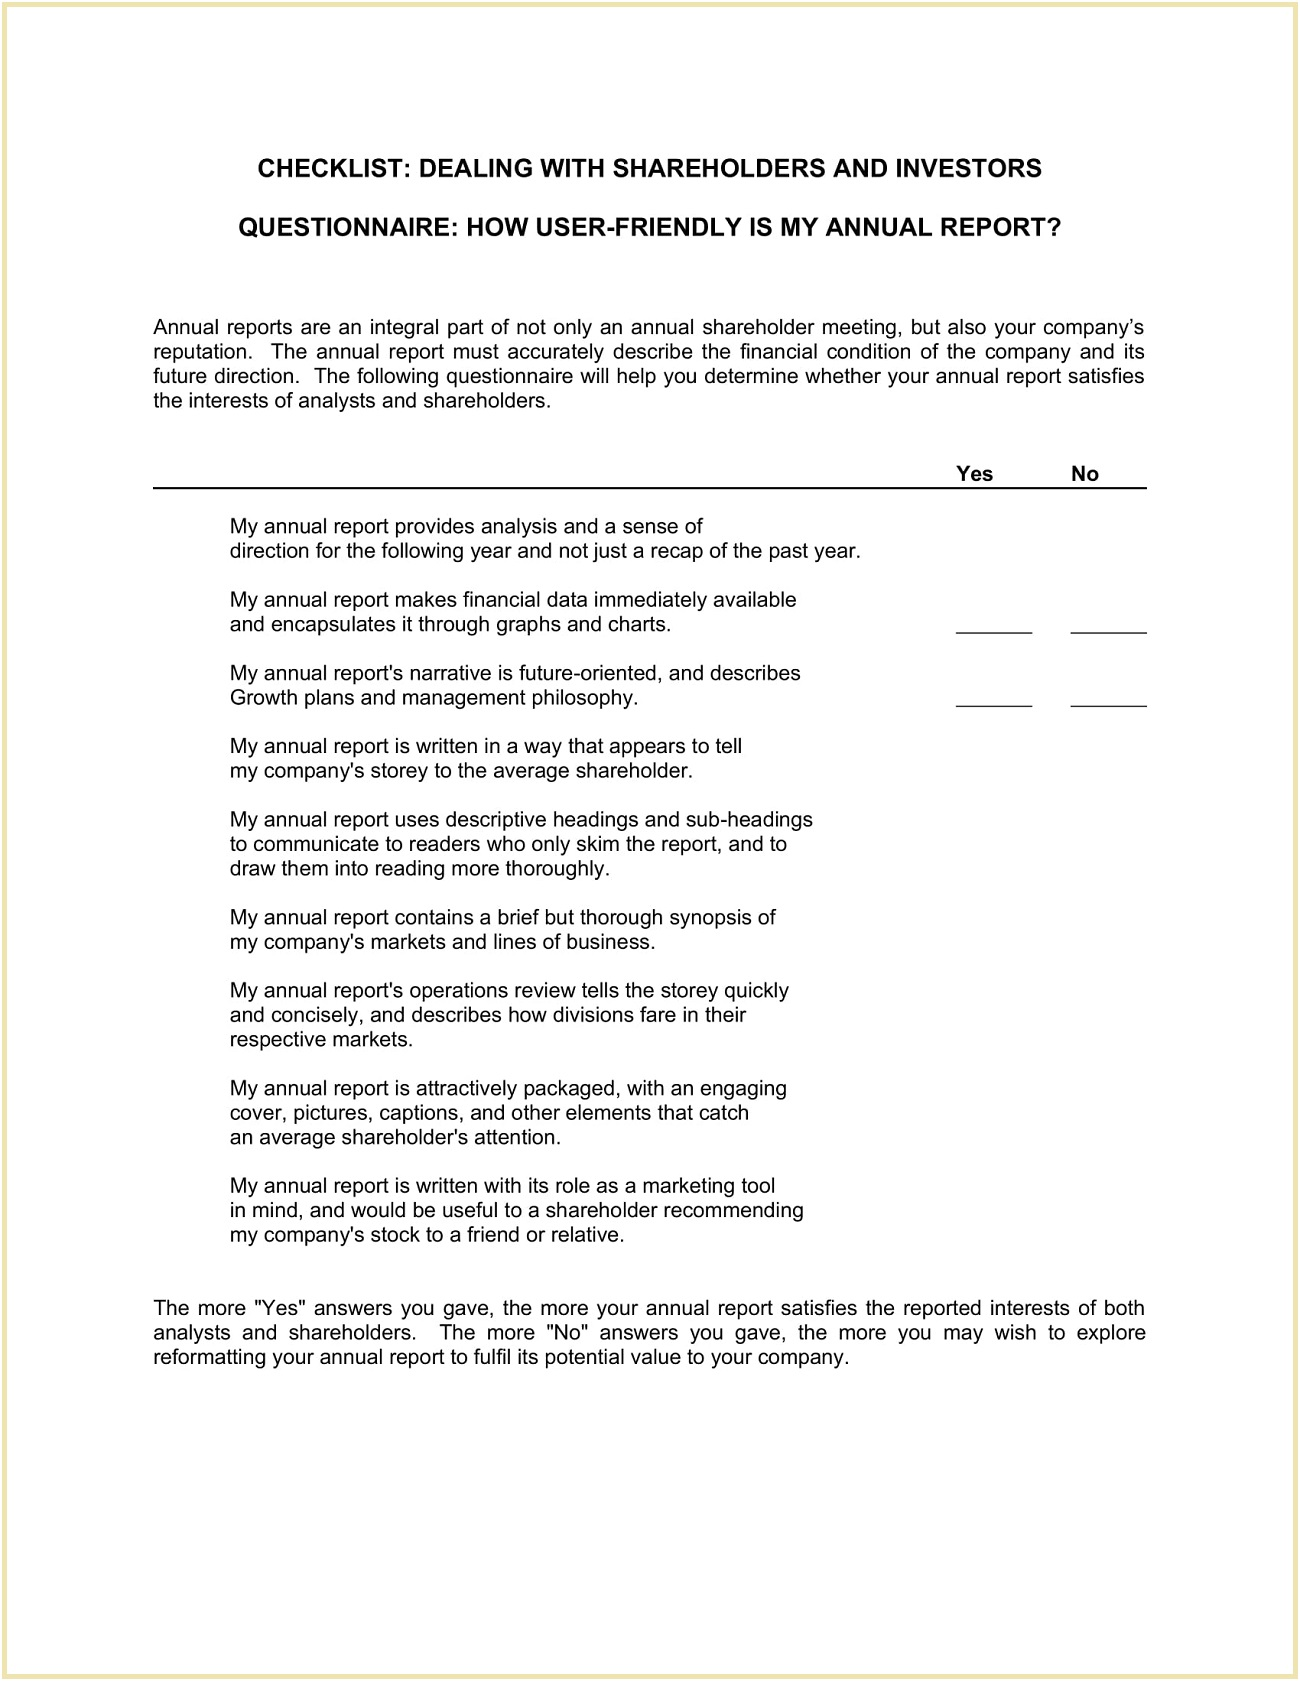 Checklist Dealing with Shareholders and Investors Template Word